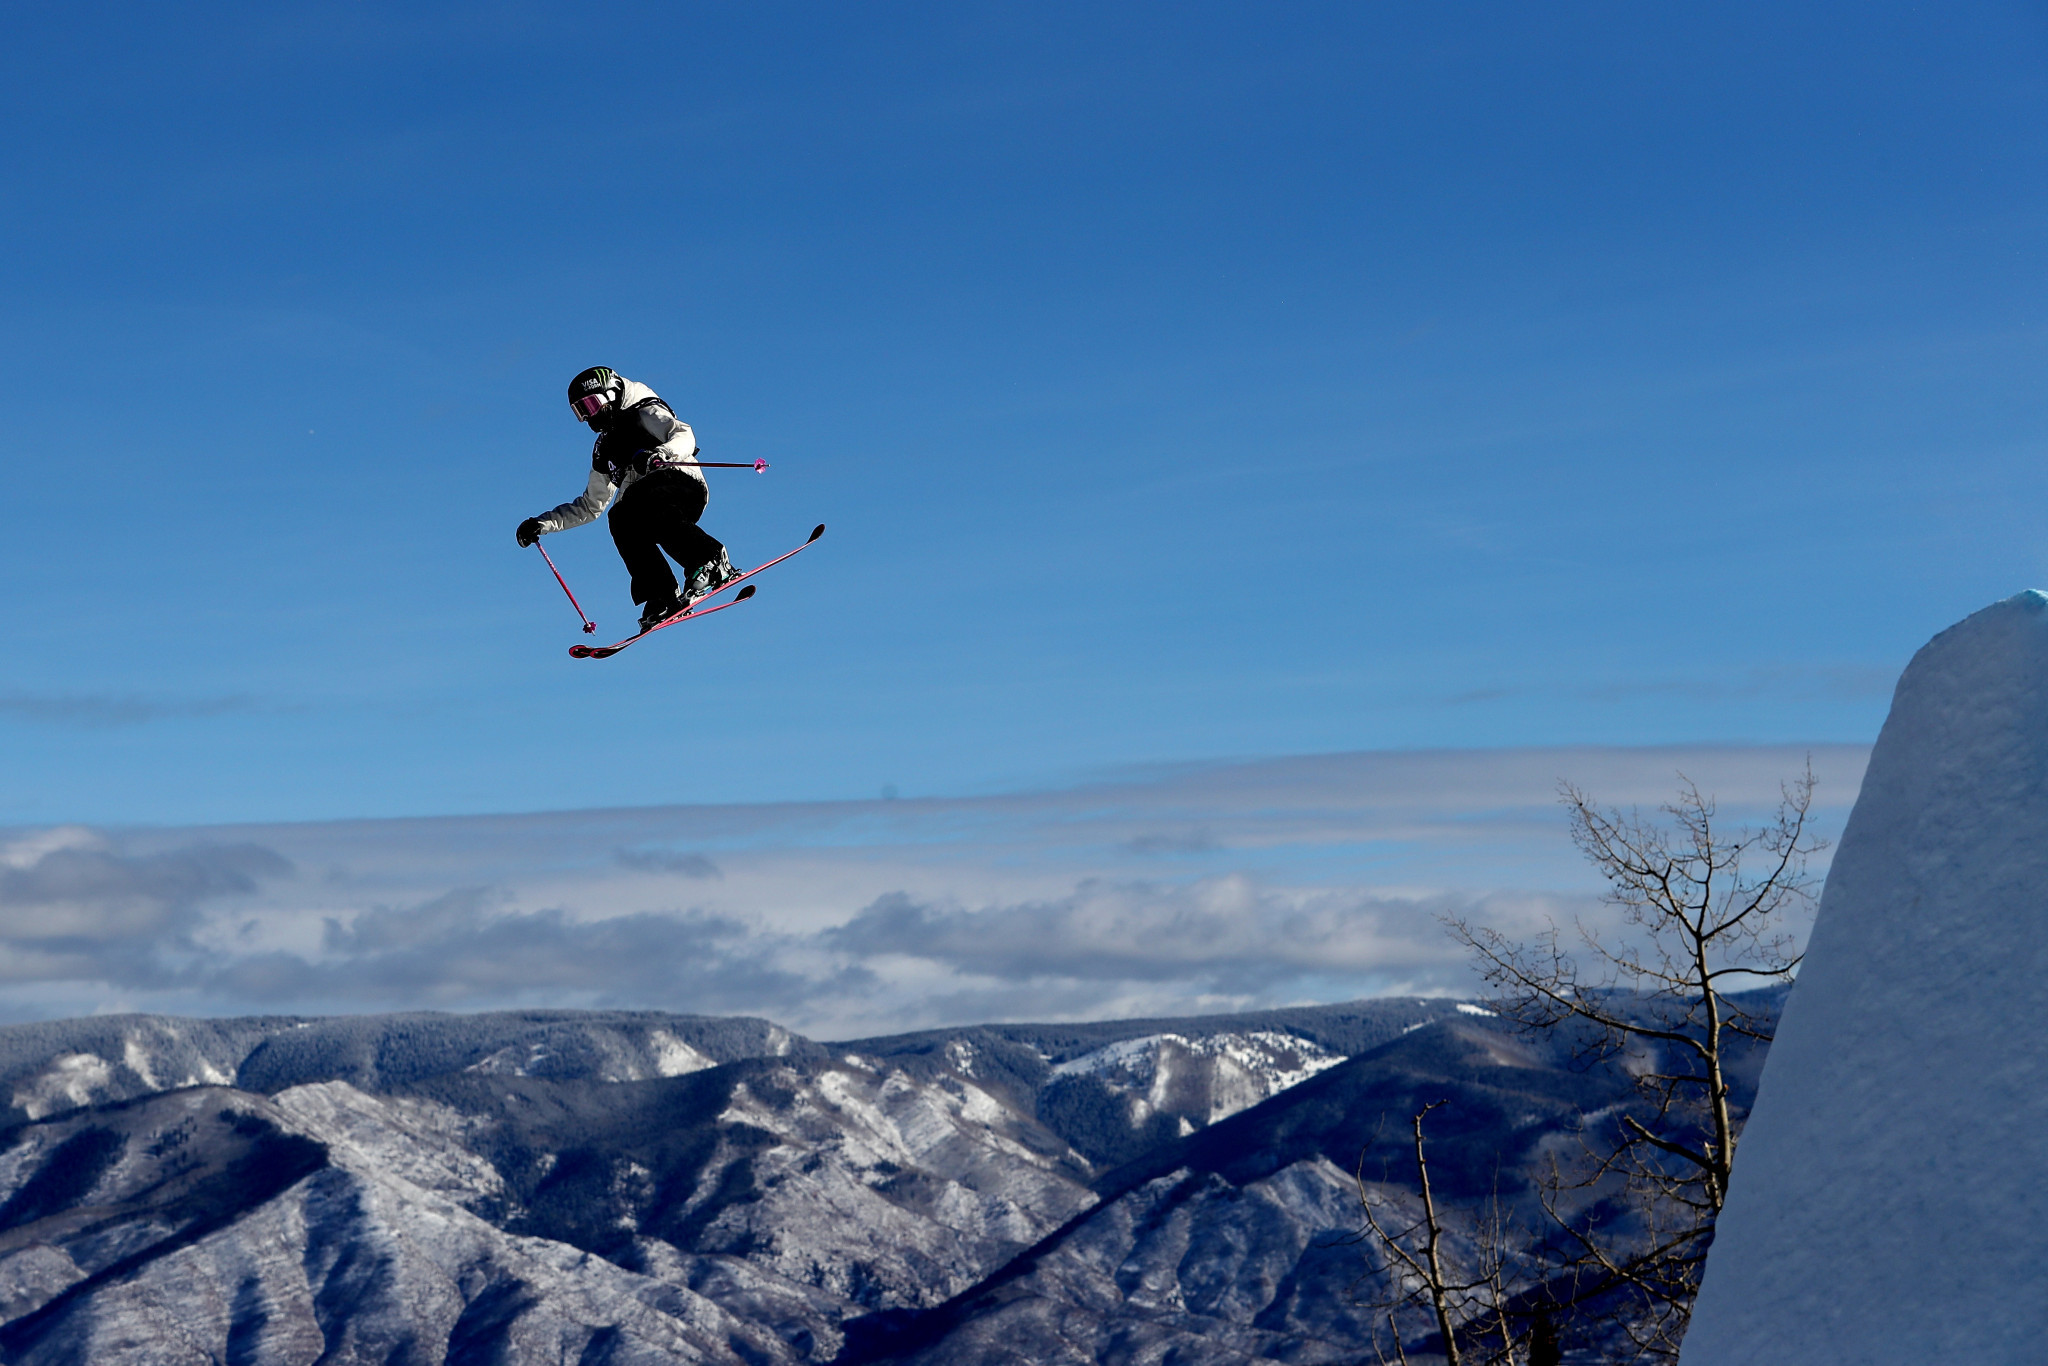 High winds see women's qualifying postponed at FIS Slopestyle Skiing World Cup in Fort Romeu